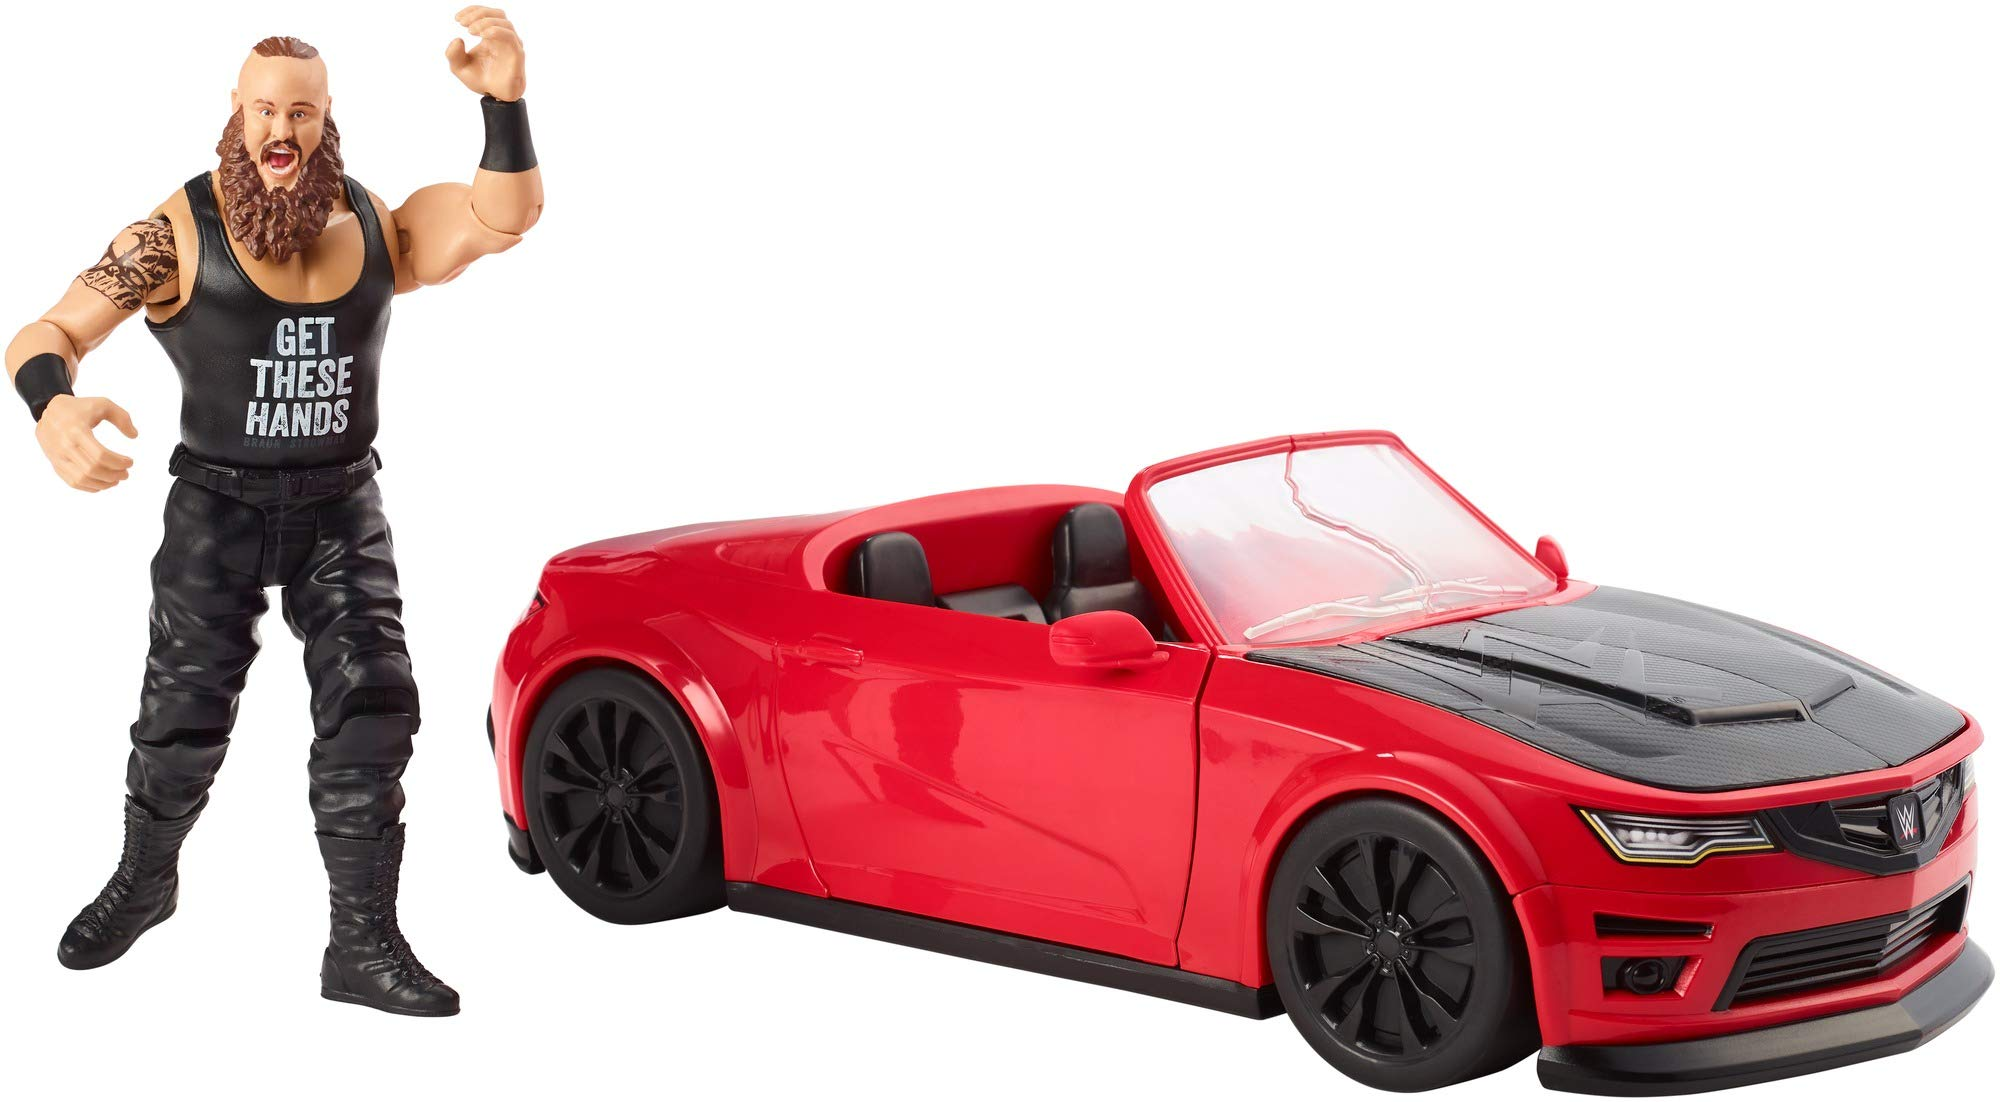 WWE Wrekkin' Slam Mobile Vehicle with 10 Breakaway Pieces (Easy Reassembly), Opening Doors, Opening Trunk (Stores Accessories) & Braun Strowman 6-inch Action Figure, Ages 8 and Older [Amazon Exclusive]